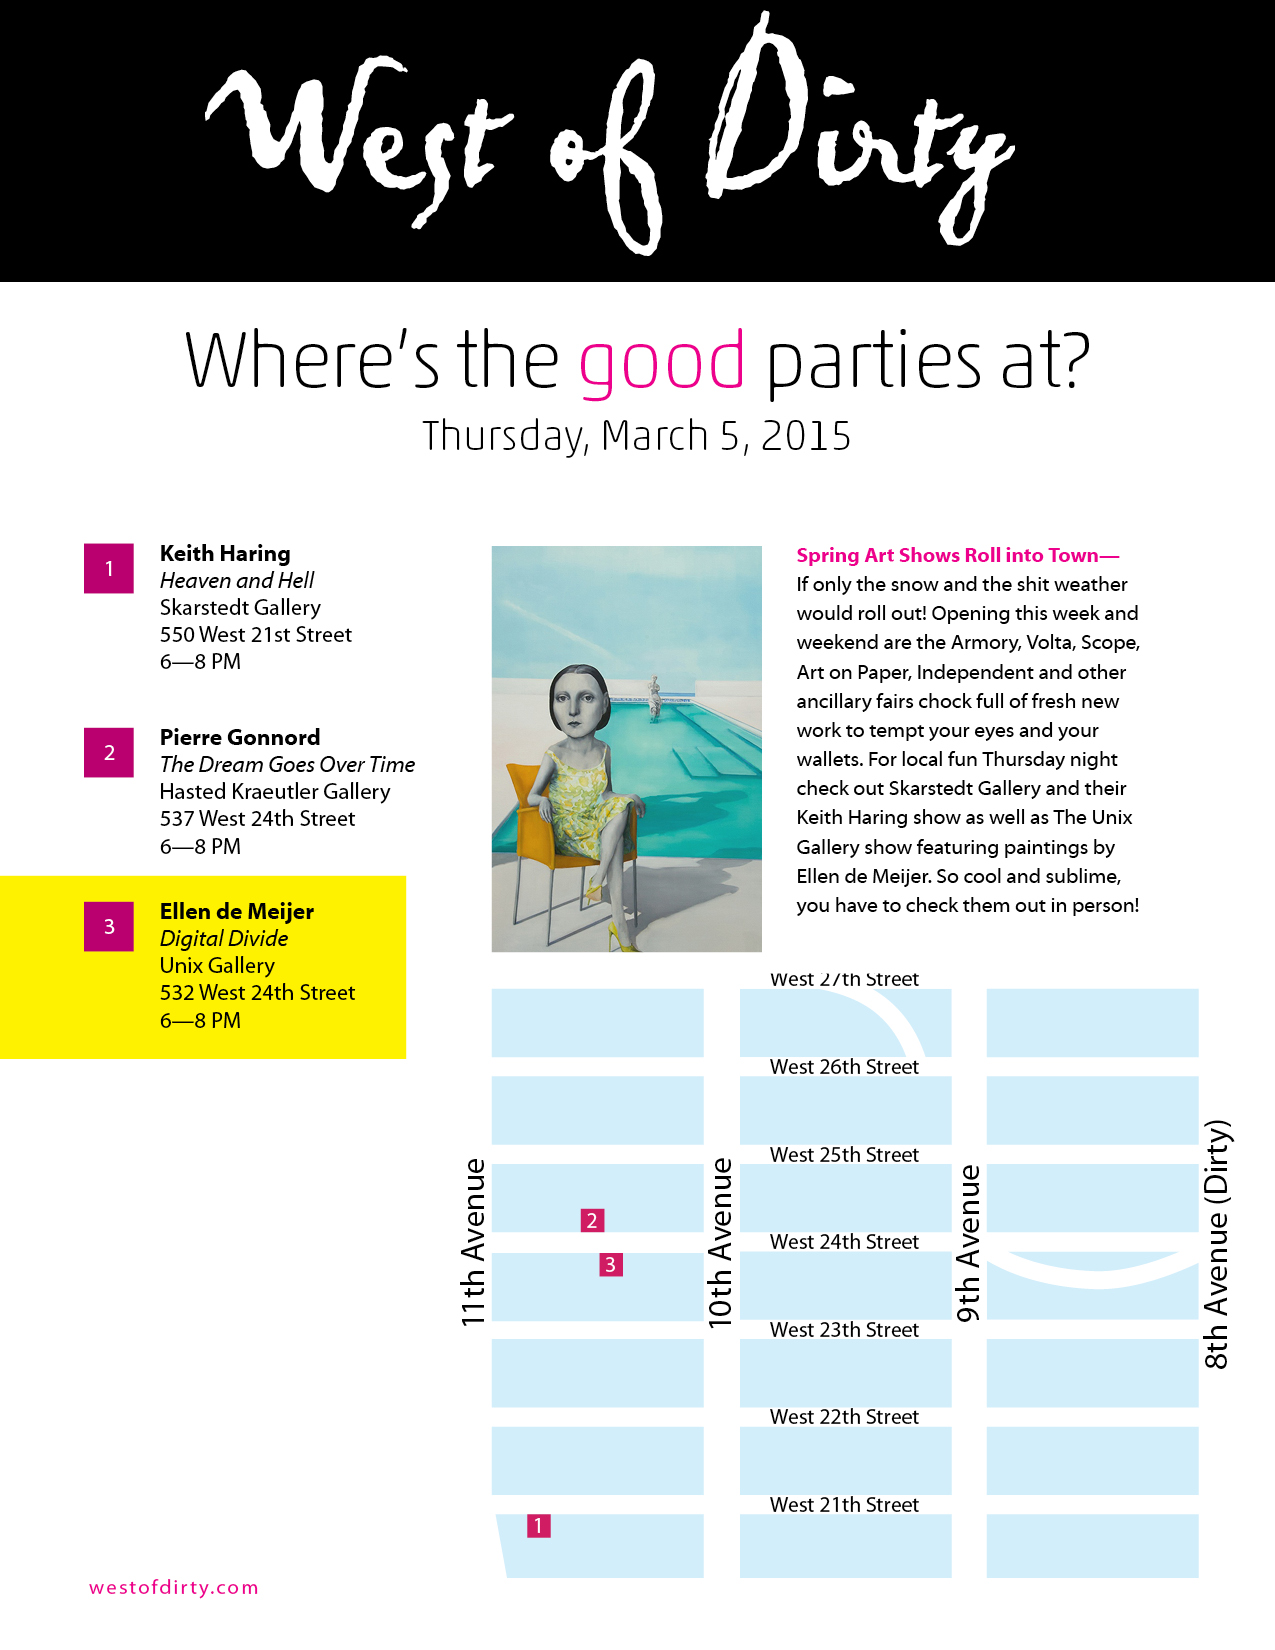 Spring Art Shows Roll into Town — If only the snow and the shit weather would roll out! Opening this week and weekend are the Armory, Volta, Scope, Art on Paper, Independent and other ancillary fairs chock full of fresh new work to tempt your eyes and your wallets. For local fun Thursday night check out Skarstedt Gallery and their Keith Haring show as well as The Unix Gallery show featuring paintings by Ellen de Meijer. So cool and sublime, you have to check them out in person!